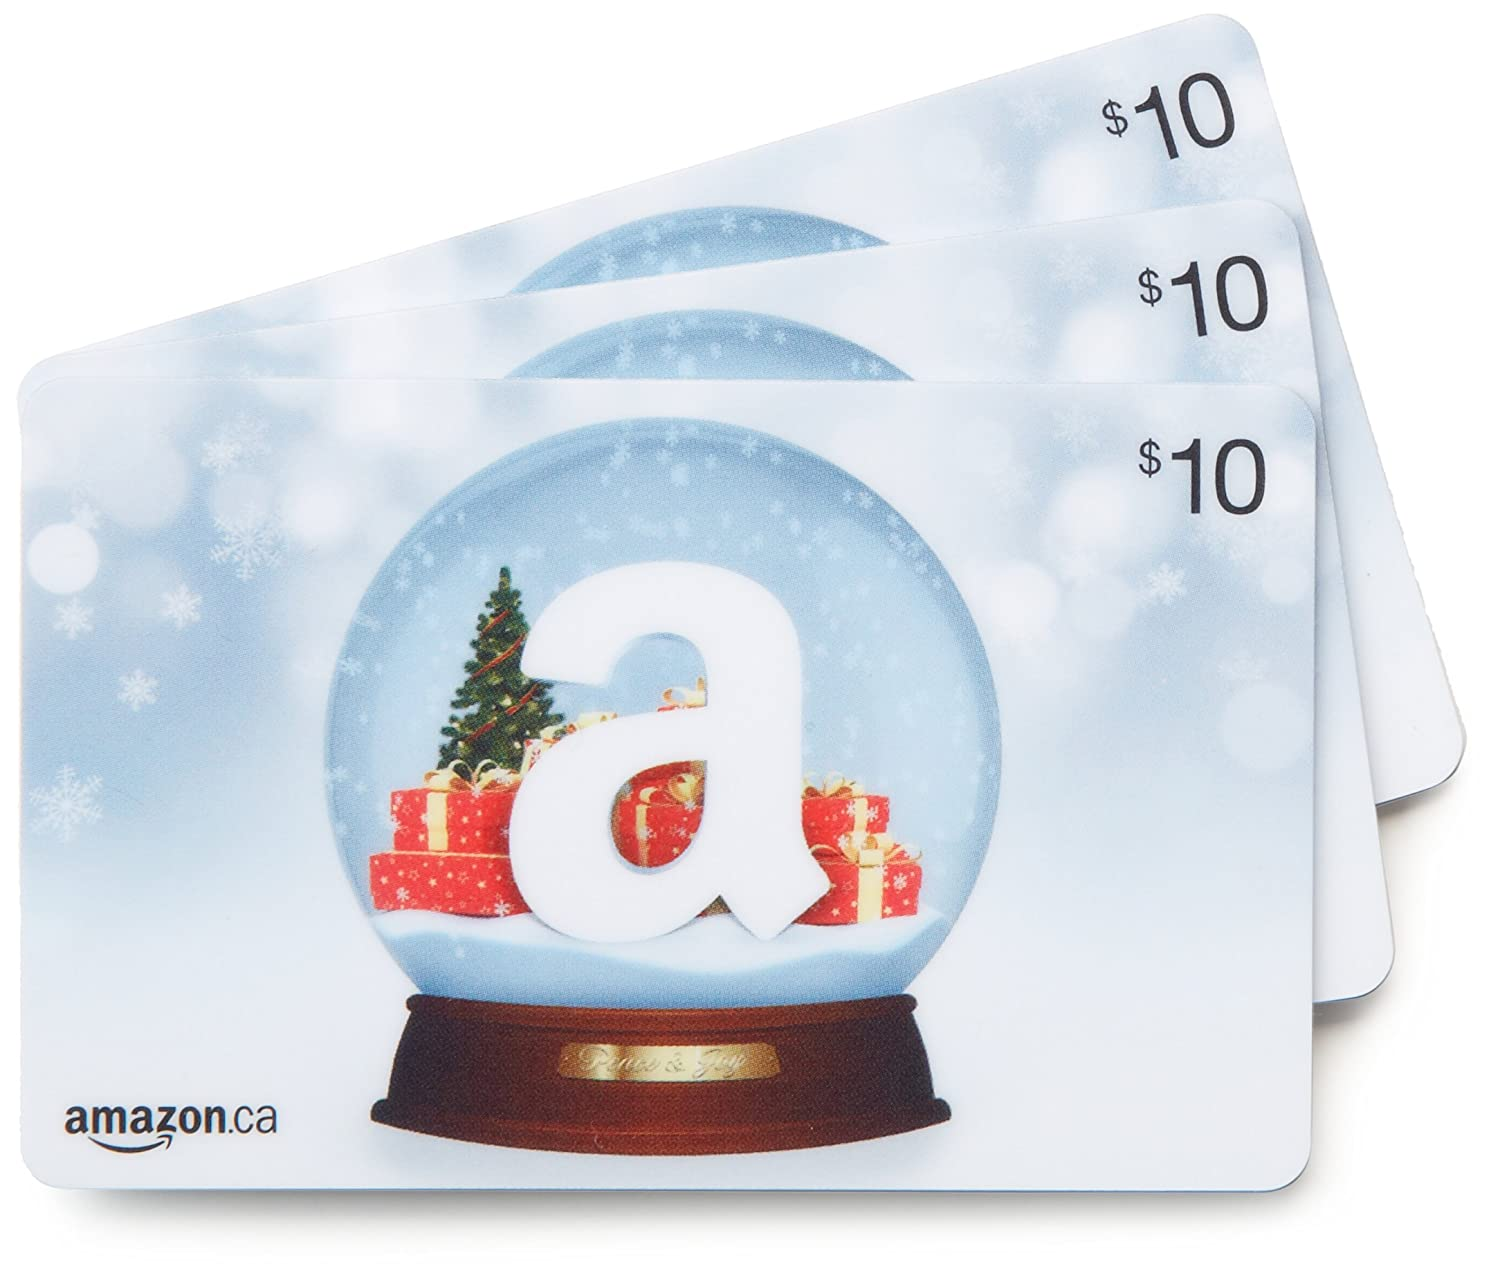 Amazon.ca Gift Cards, Pack of 3 (Various Card Designs) Amazon.ca $10 Gift Card